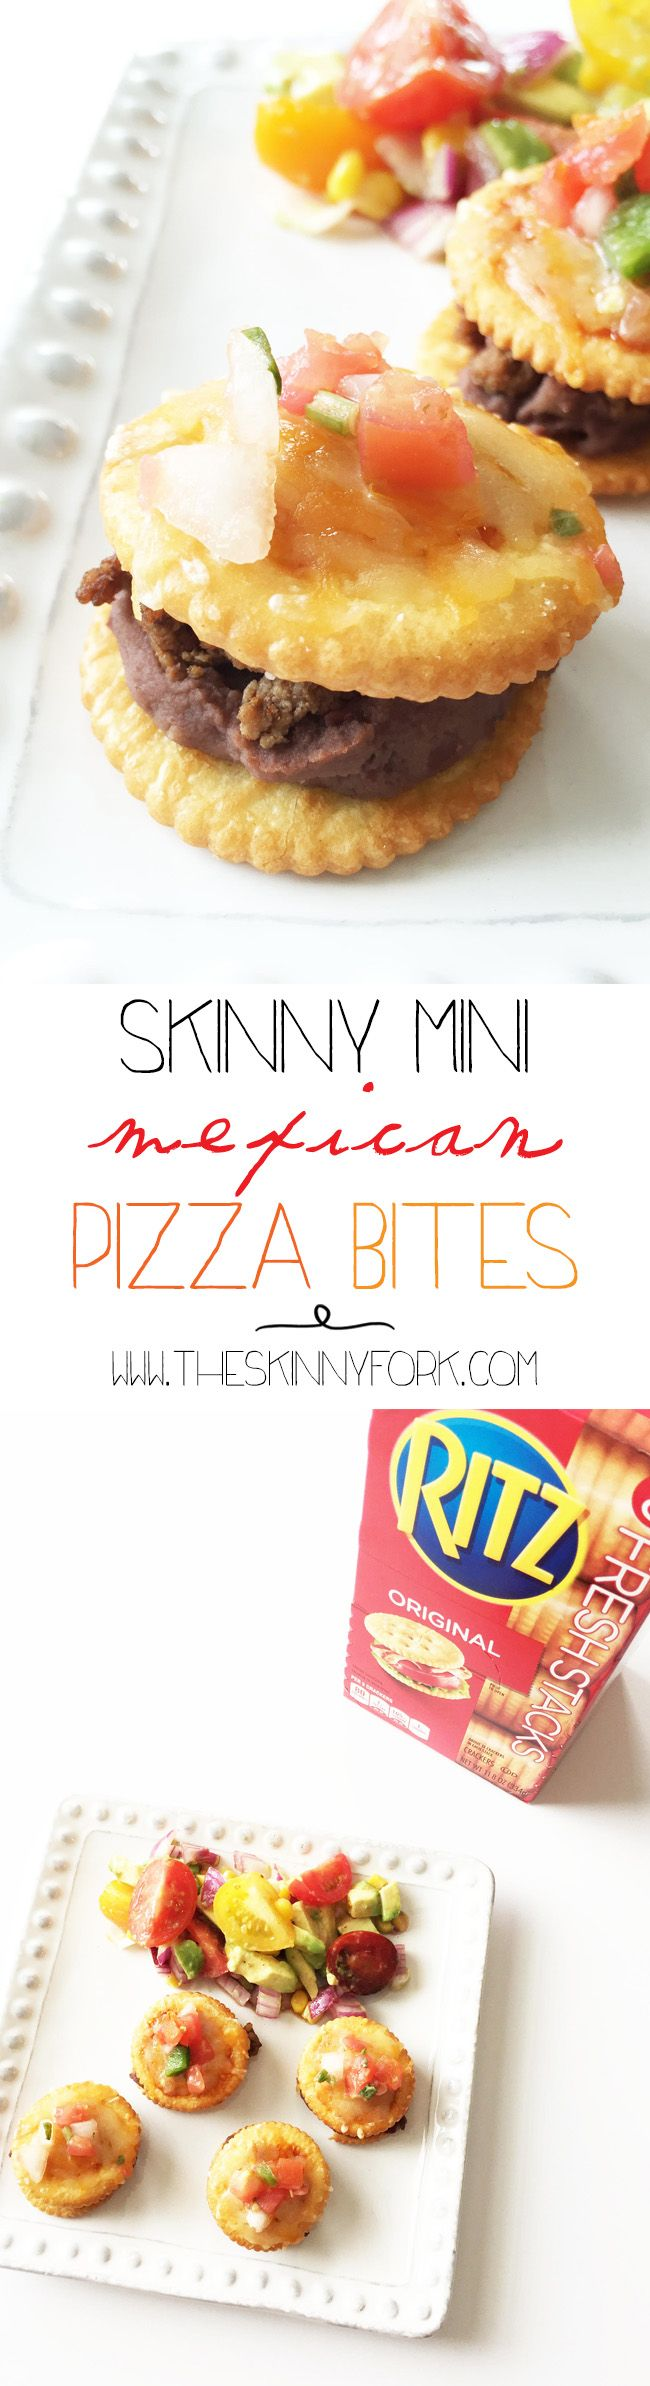 These Skinny Mini Mexican Pizza Bites #StackItUp as an appetizer, snack, or even as a little meal! They are full of flavor and so very easy to make. Yum! TheSkinnyFork.com #Ad